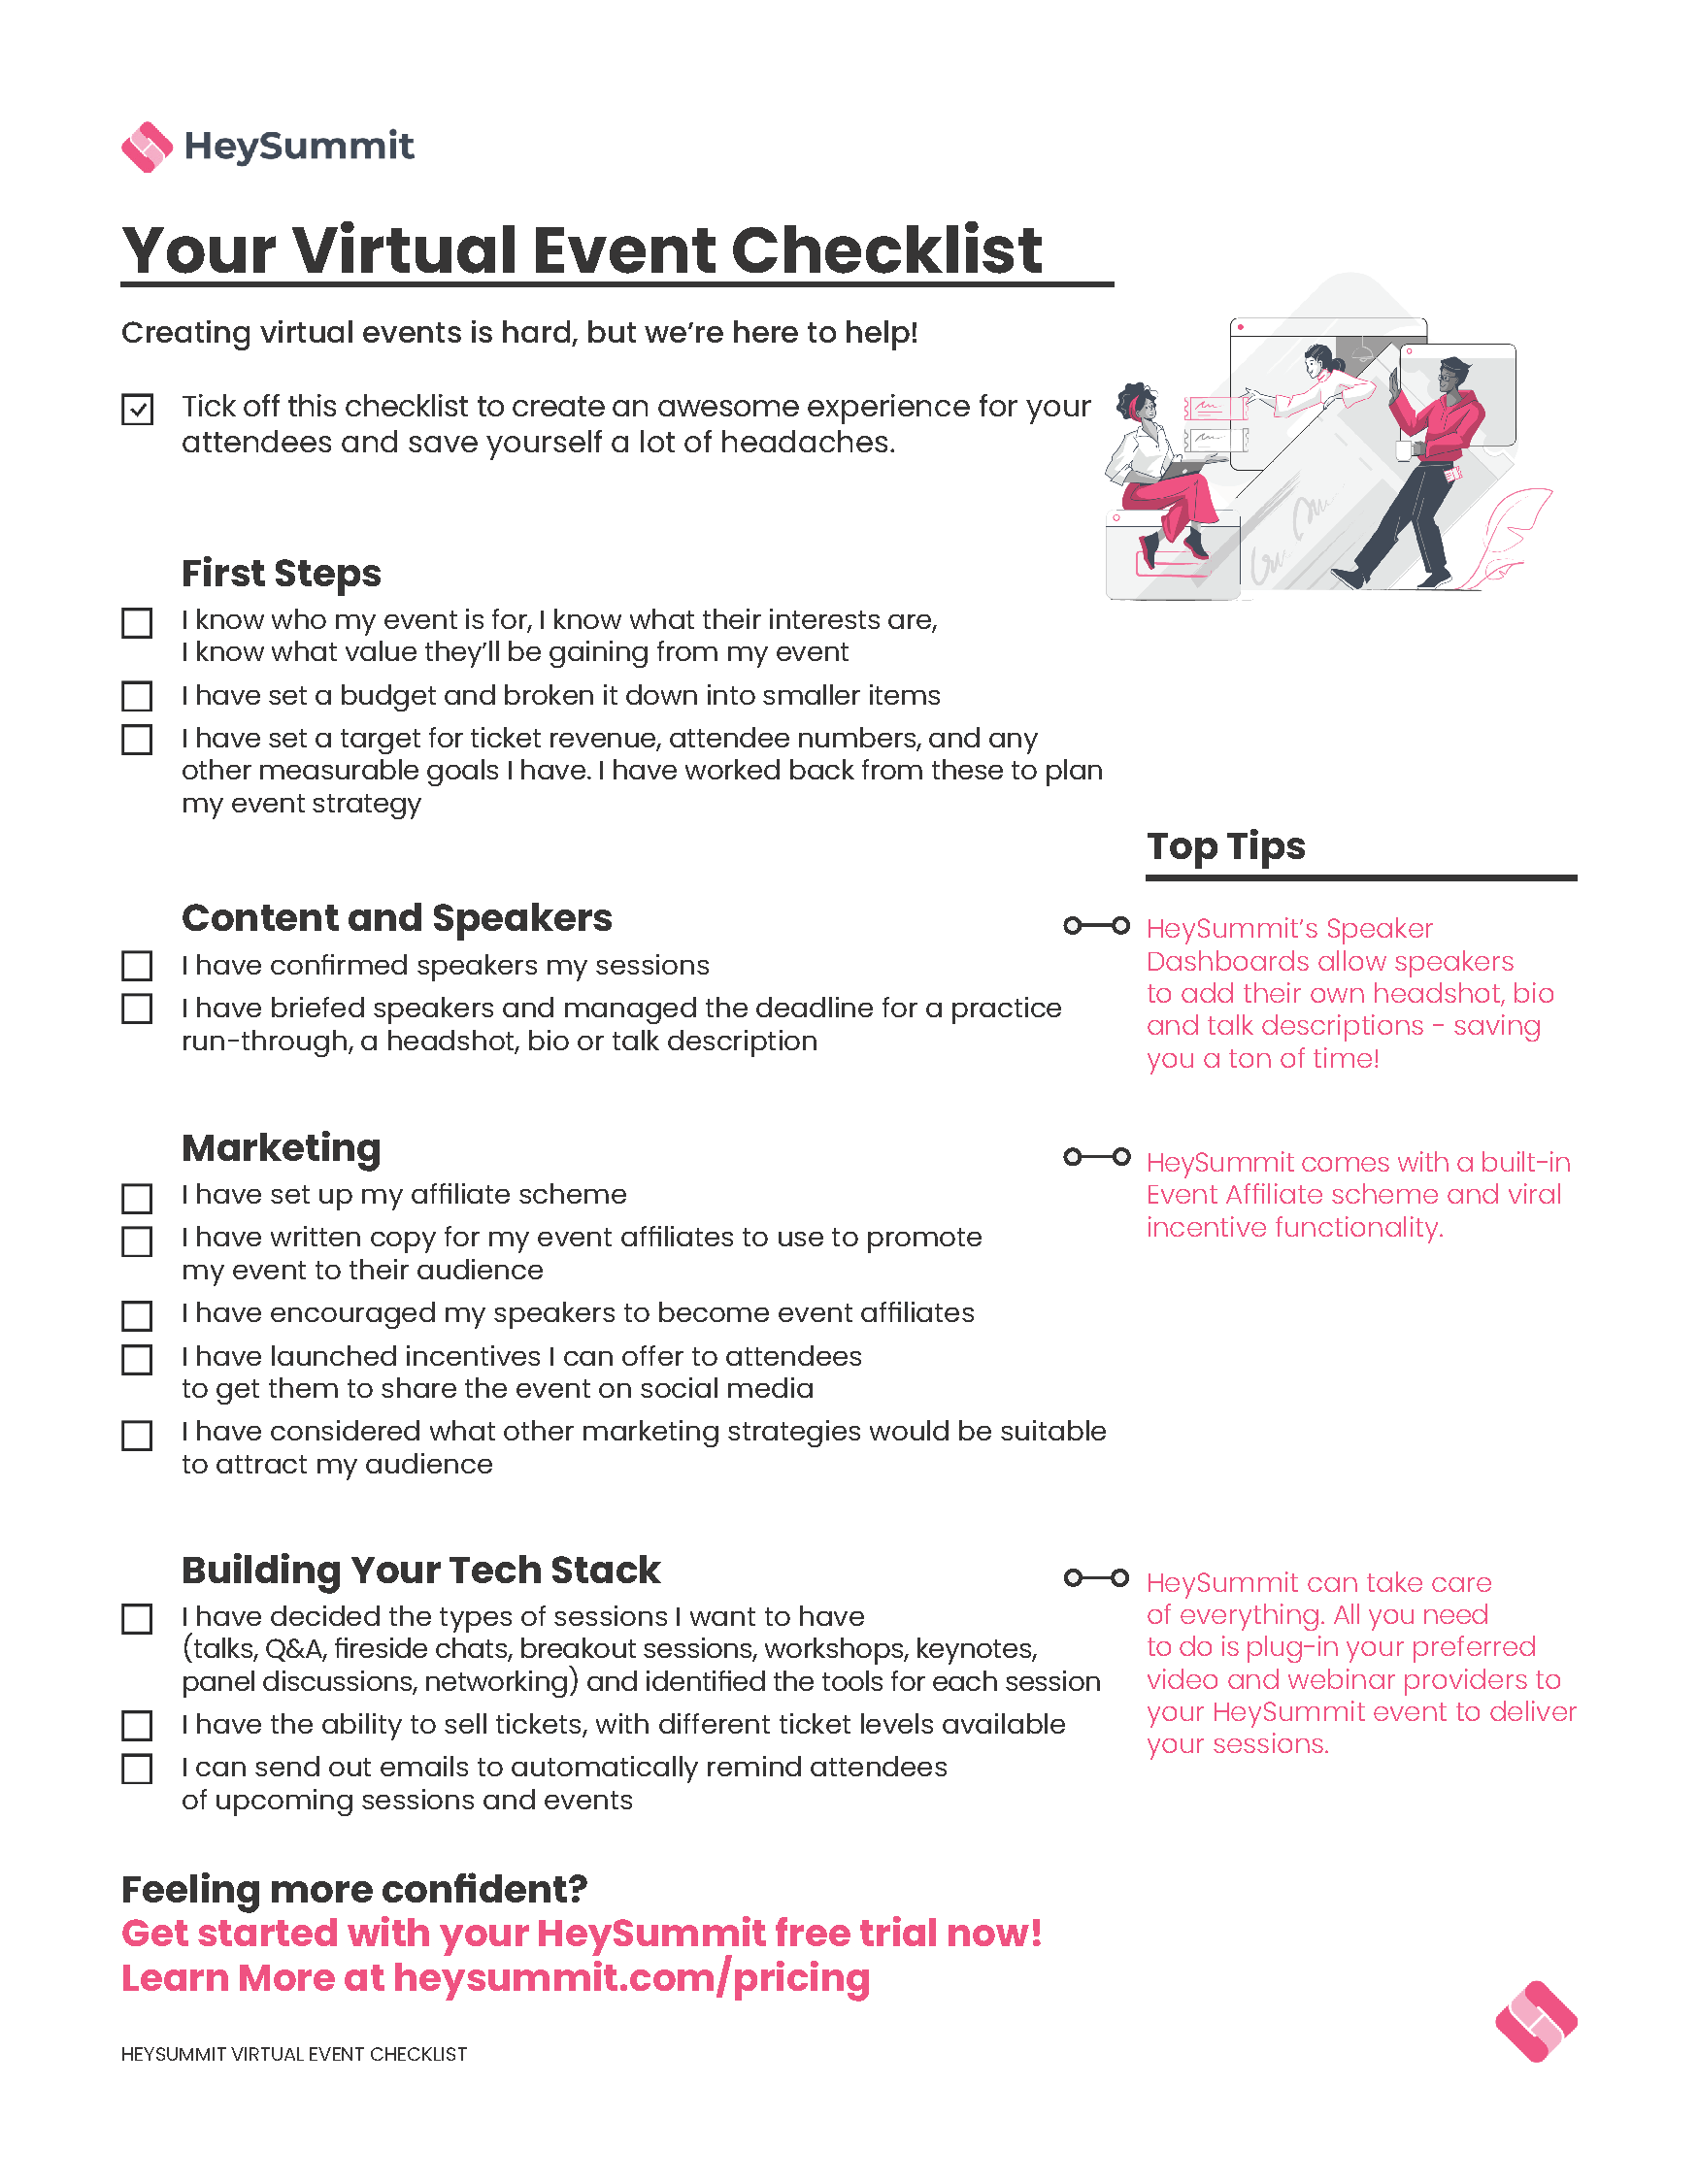 Image of the Virtual Event checklist